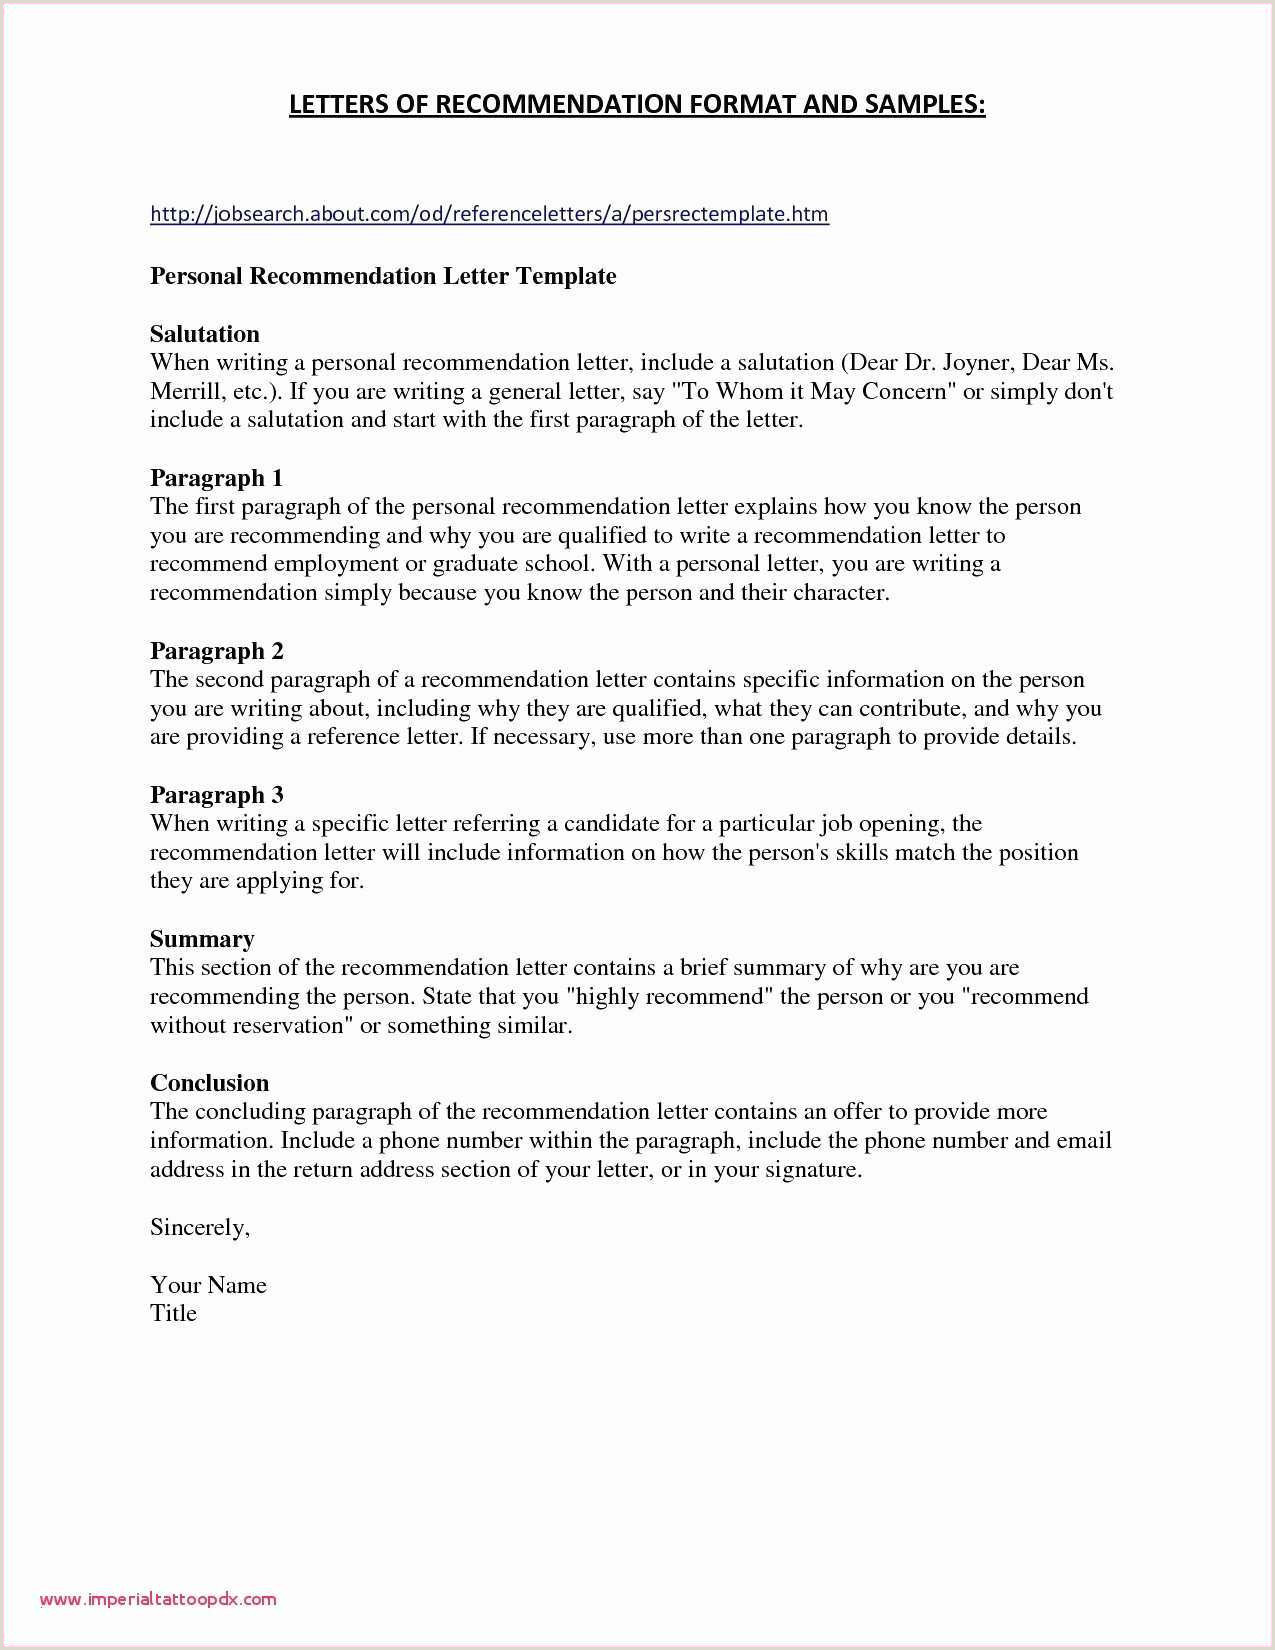 Professional Cv format for Lecturer Post Beautiful Resume Samples for Lecturer In Puter Science